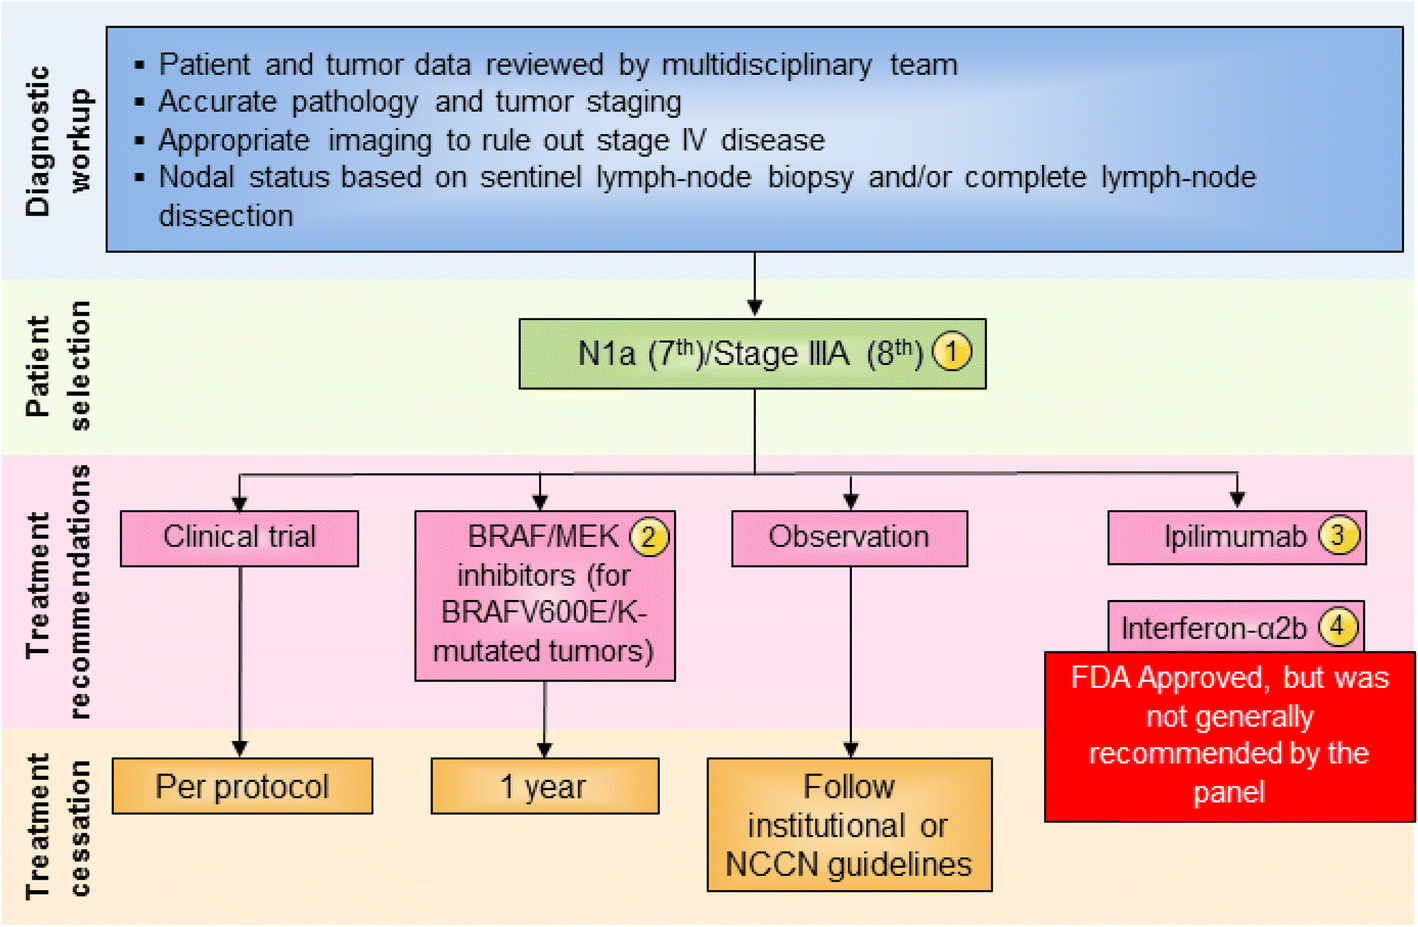 An update on the Society for Immunotherapy of Cancer